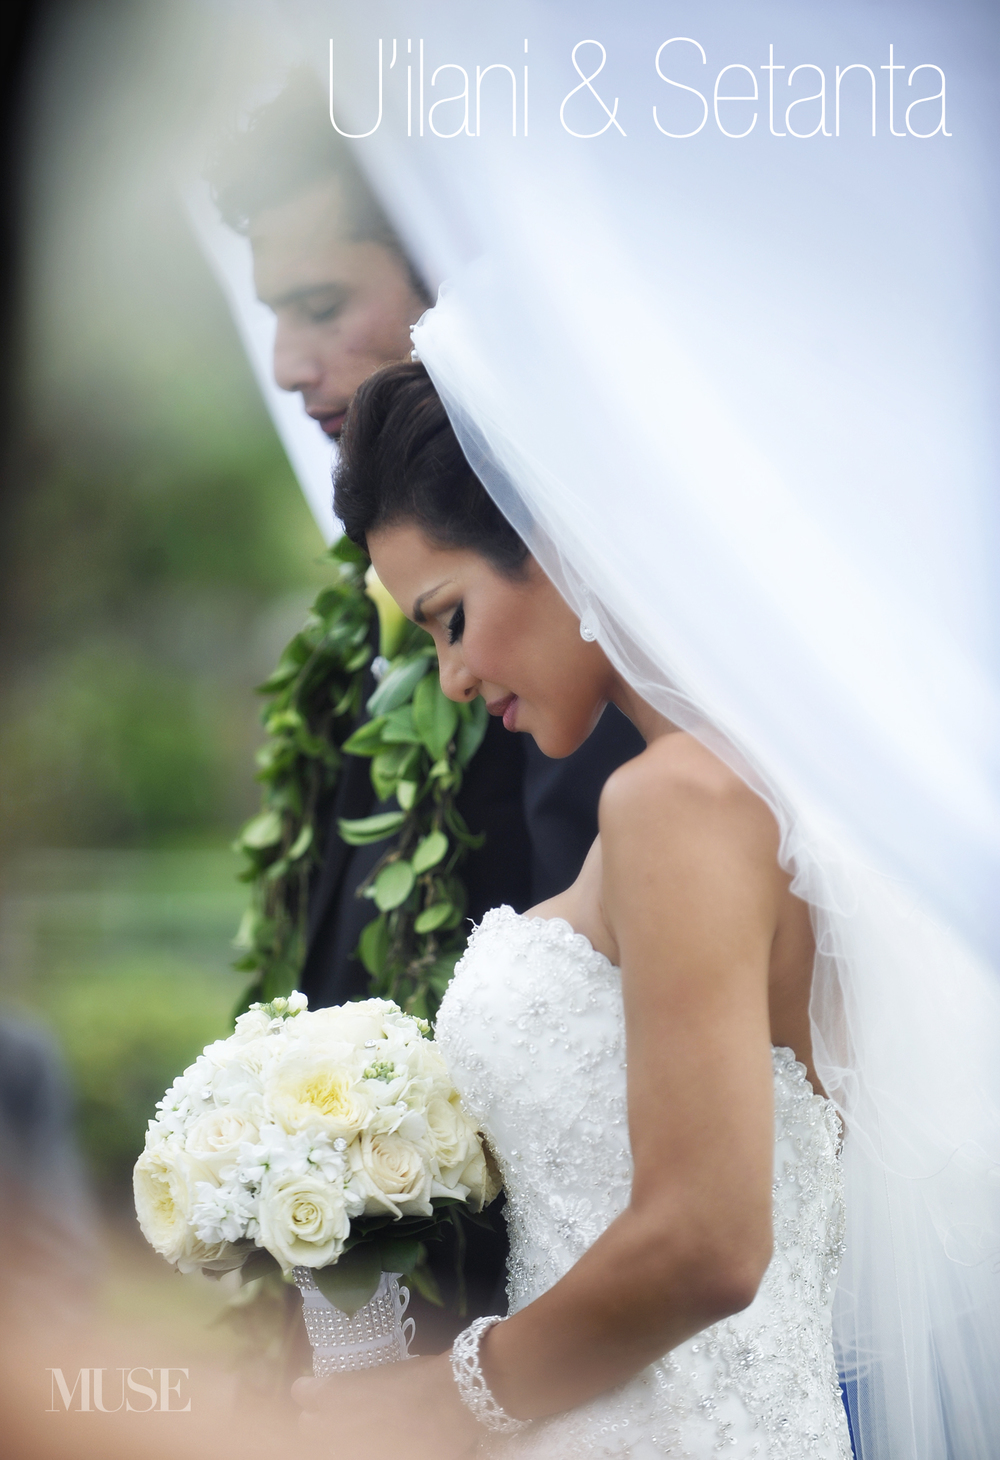 A complete set of photos from Uilani's wedding will be posted online shortly. Thank you for your patience. Click to view a larger size version of this photo.